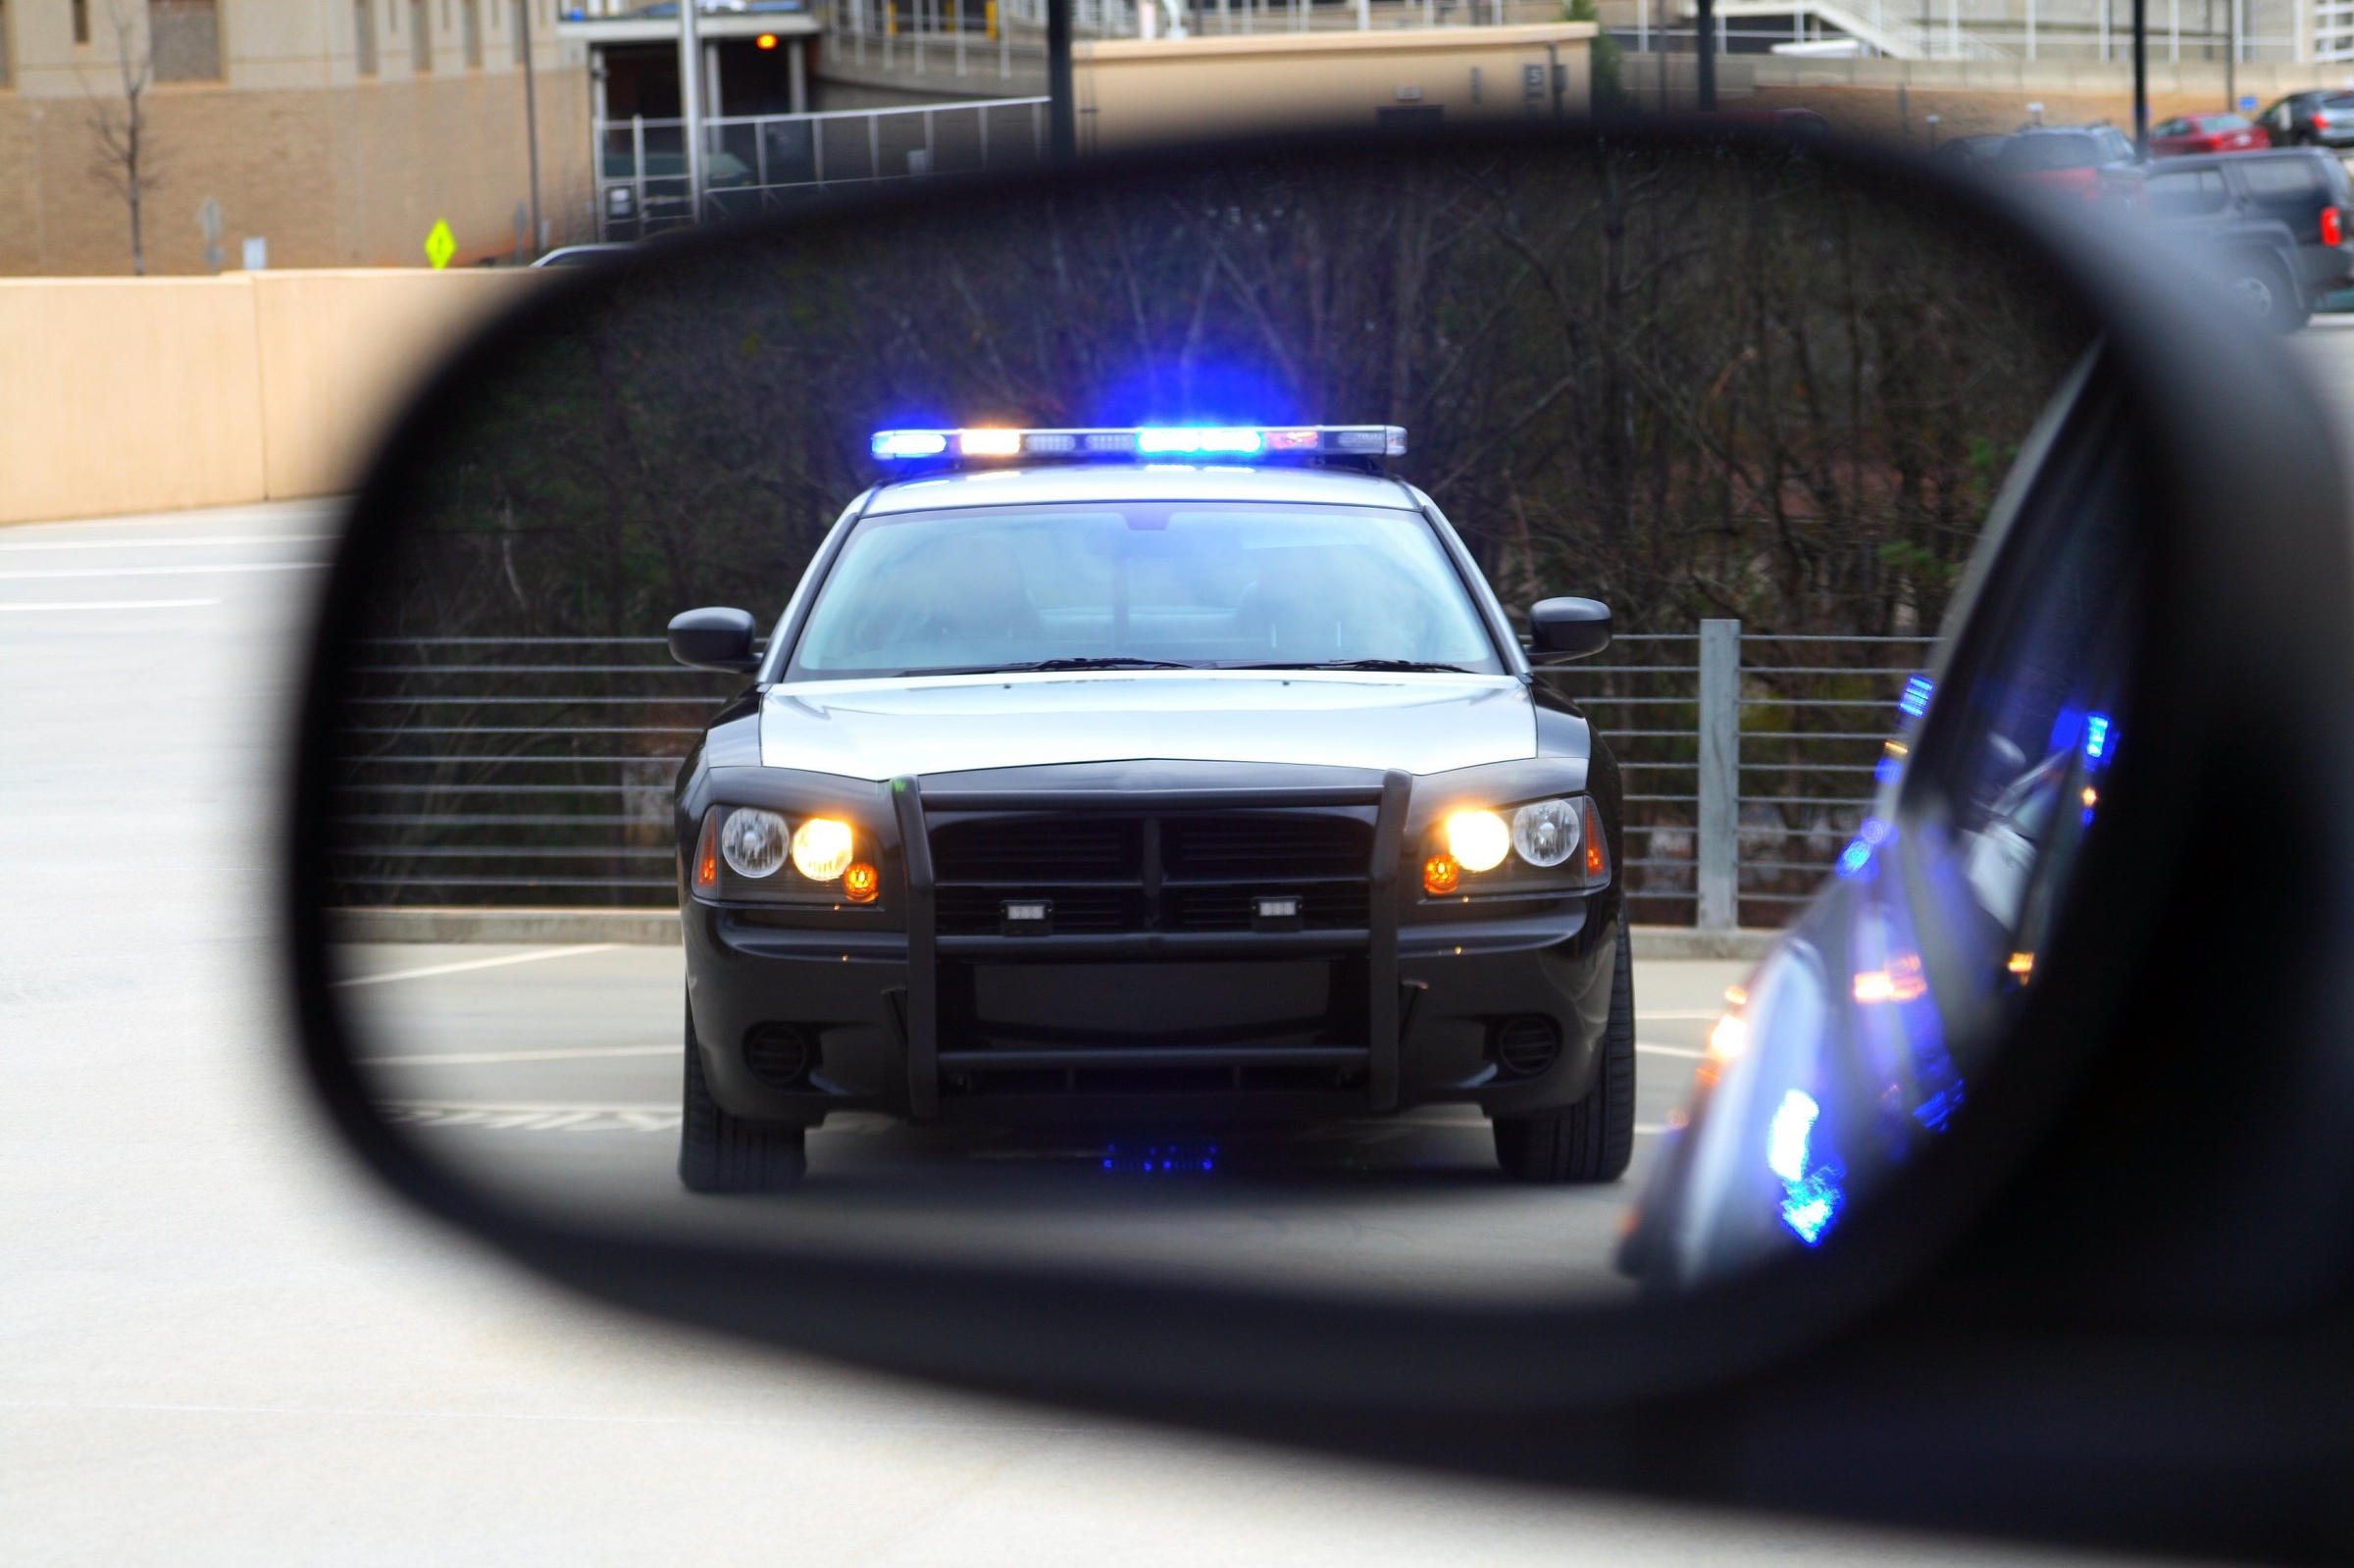 Speed Trap: How driving through Virginia could land you in